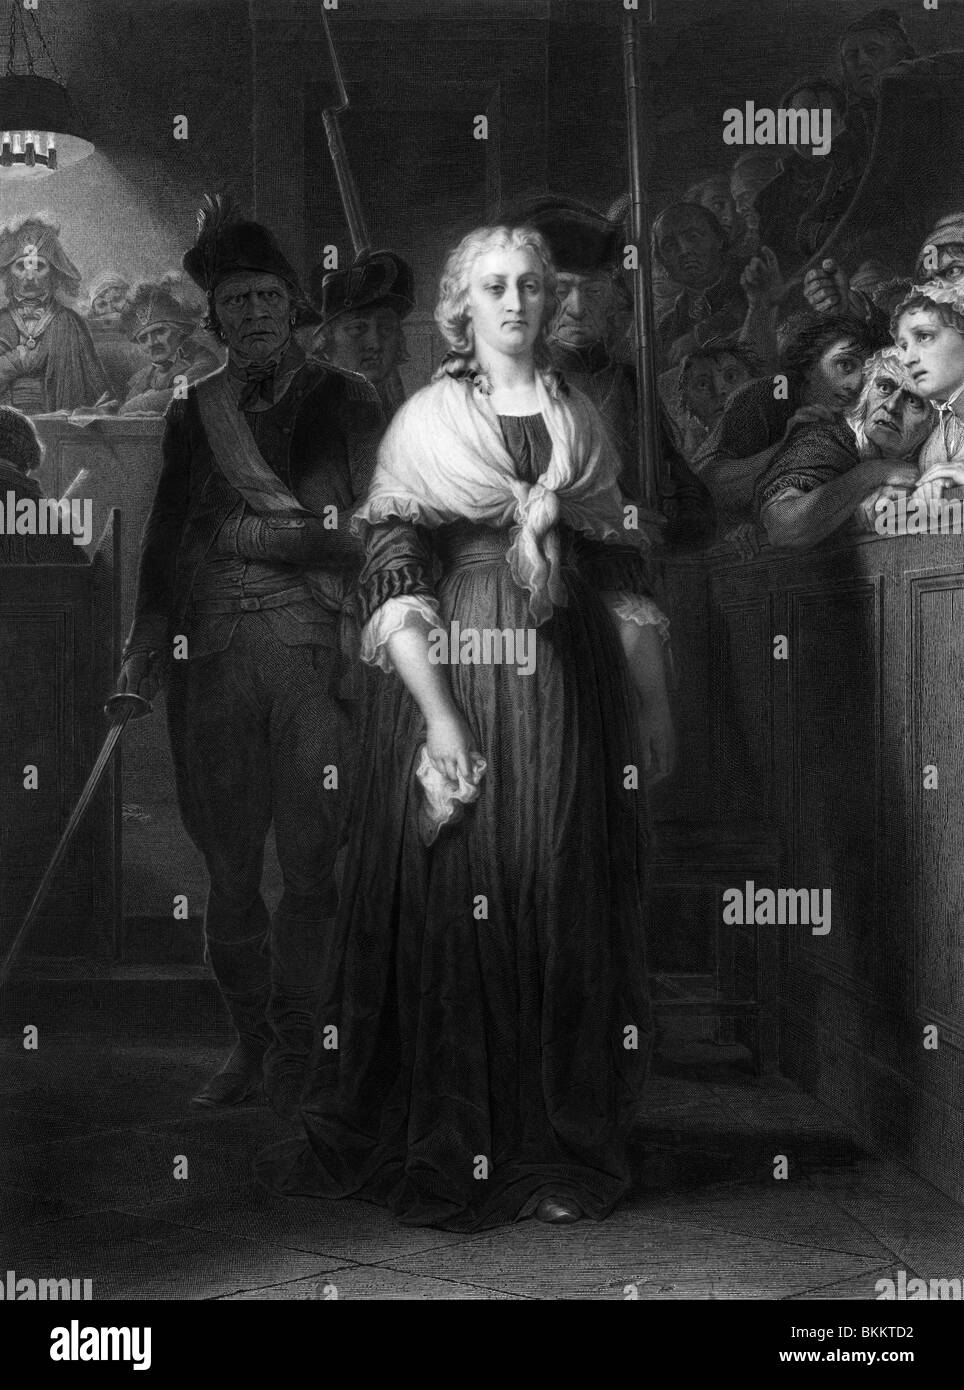 Vintage engraving print of French Queen Marie Antoinette being condemned to death by the Revolutionary Tribunal - Stock Image